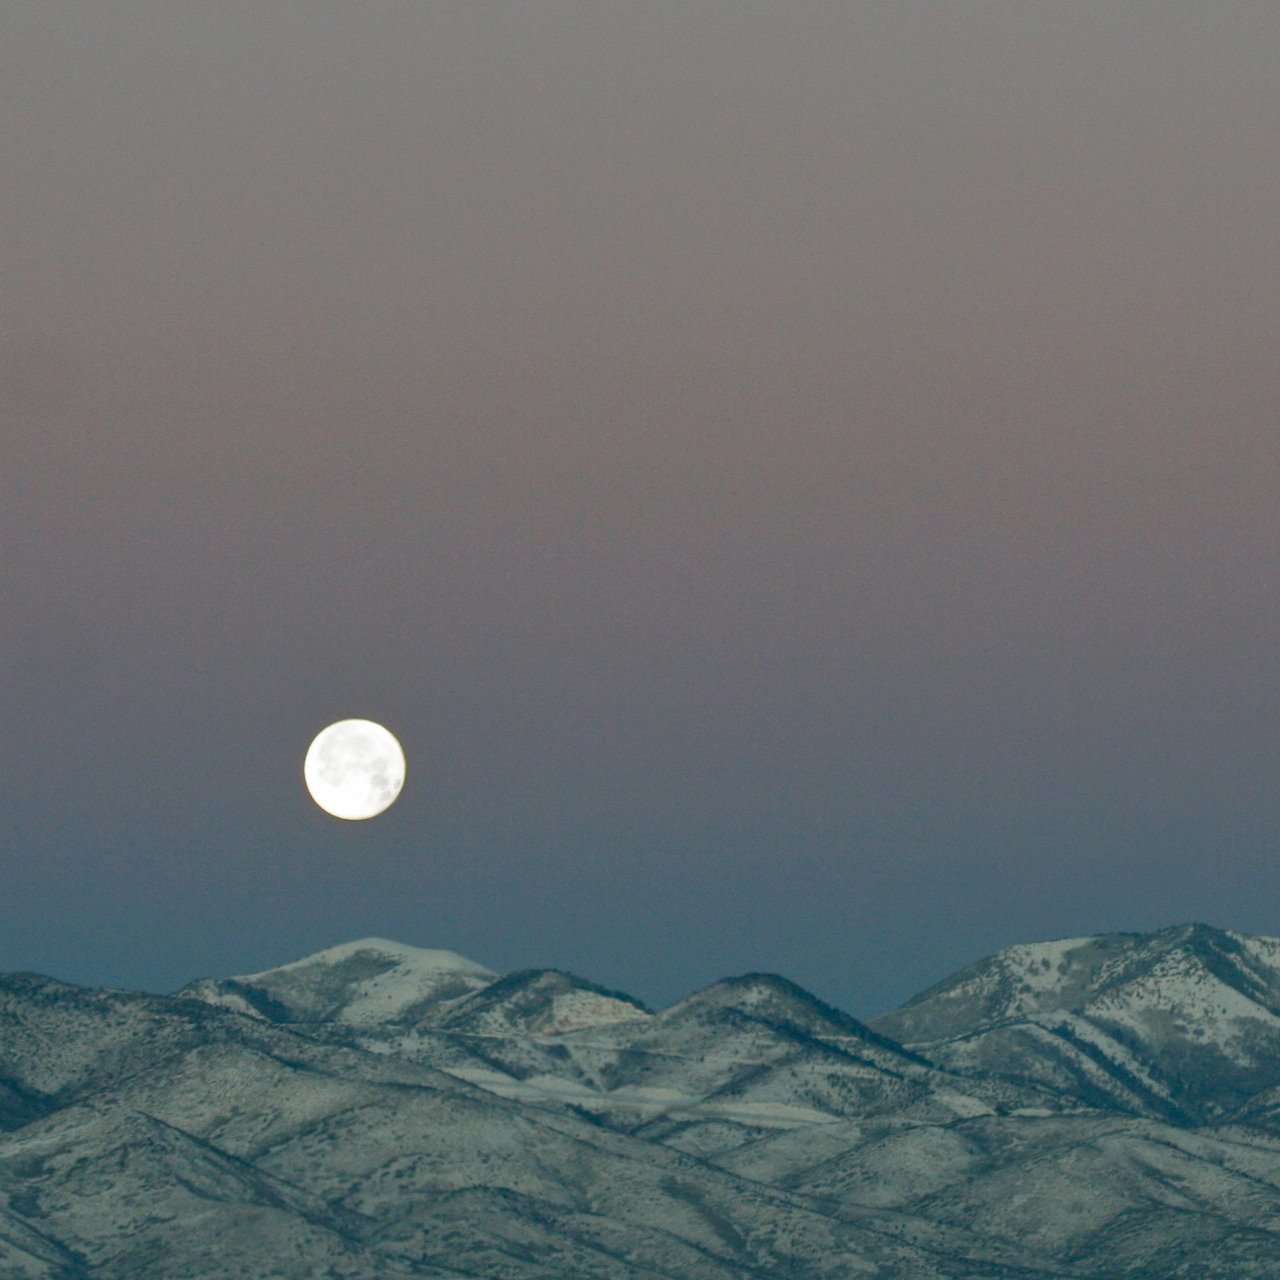 full moon over foothills in purple sky